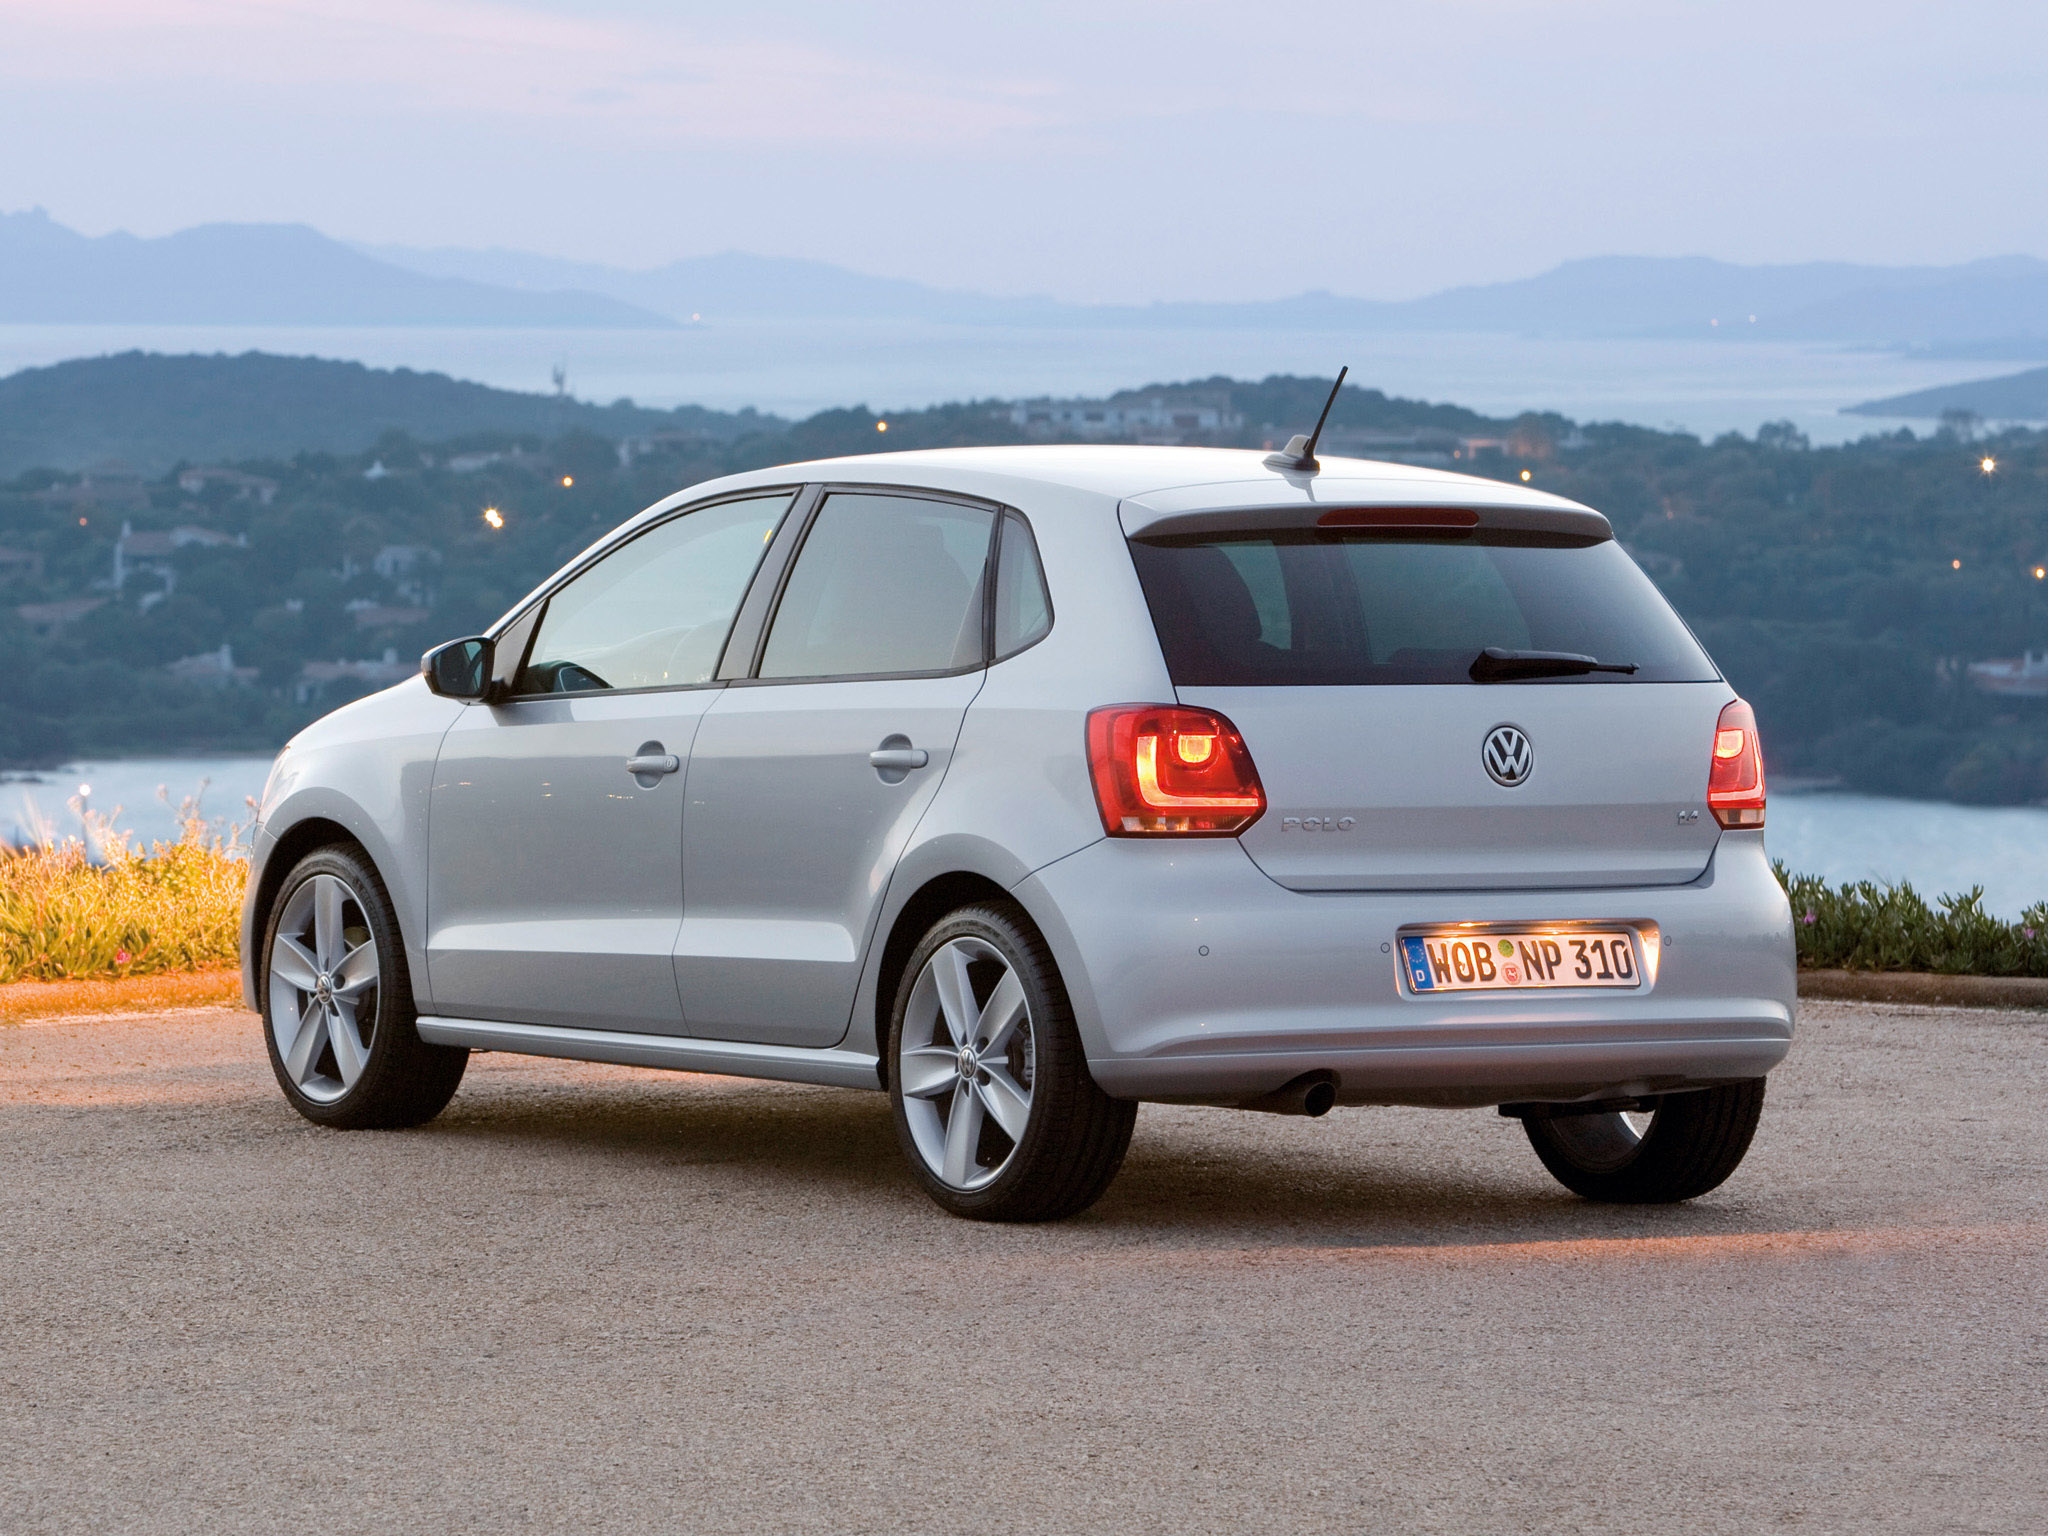 volkswagen polo 2009 volkswagen polo 2009 photo 22 car in pictures car photo gallery. Black Bedroom Furniture Sets. Home Design Ideas